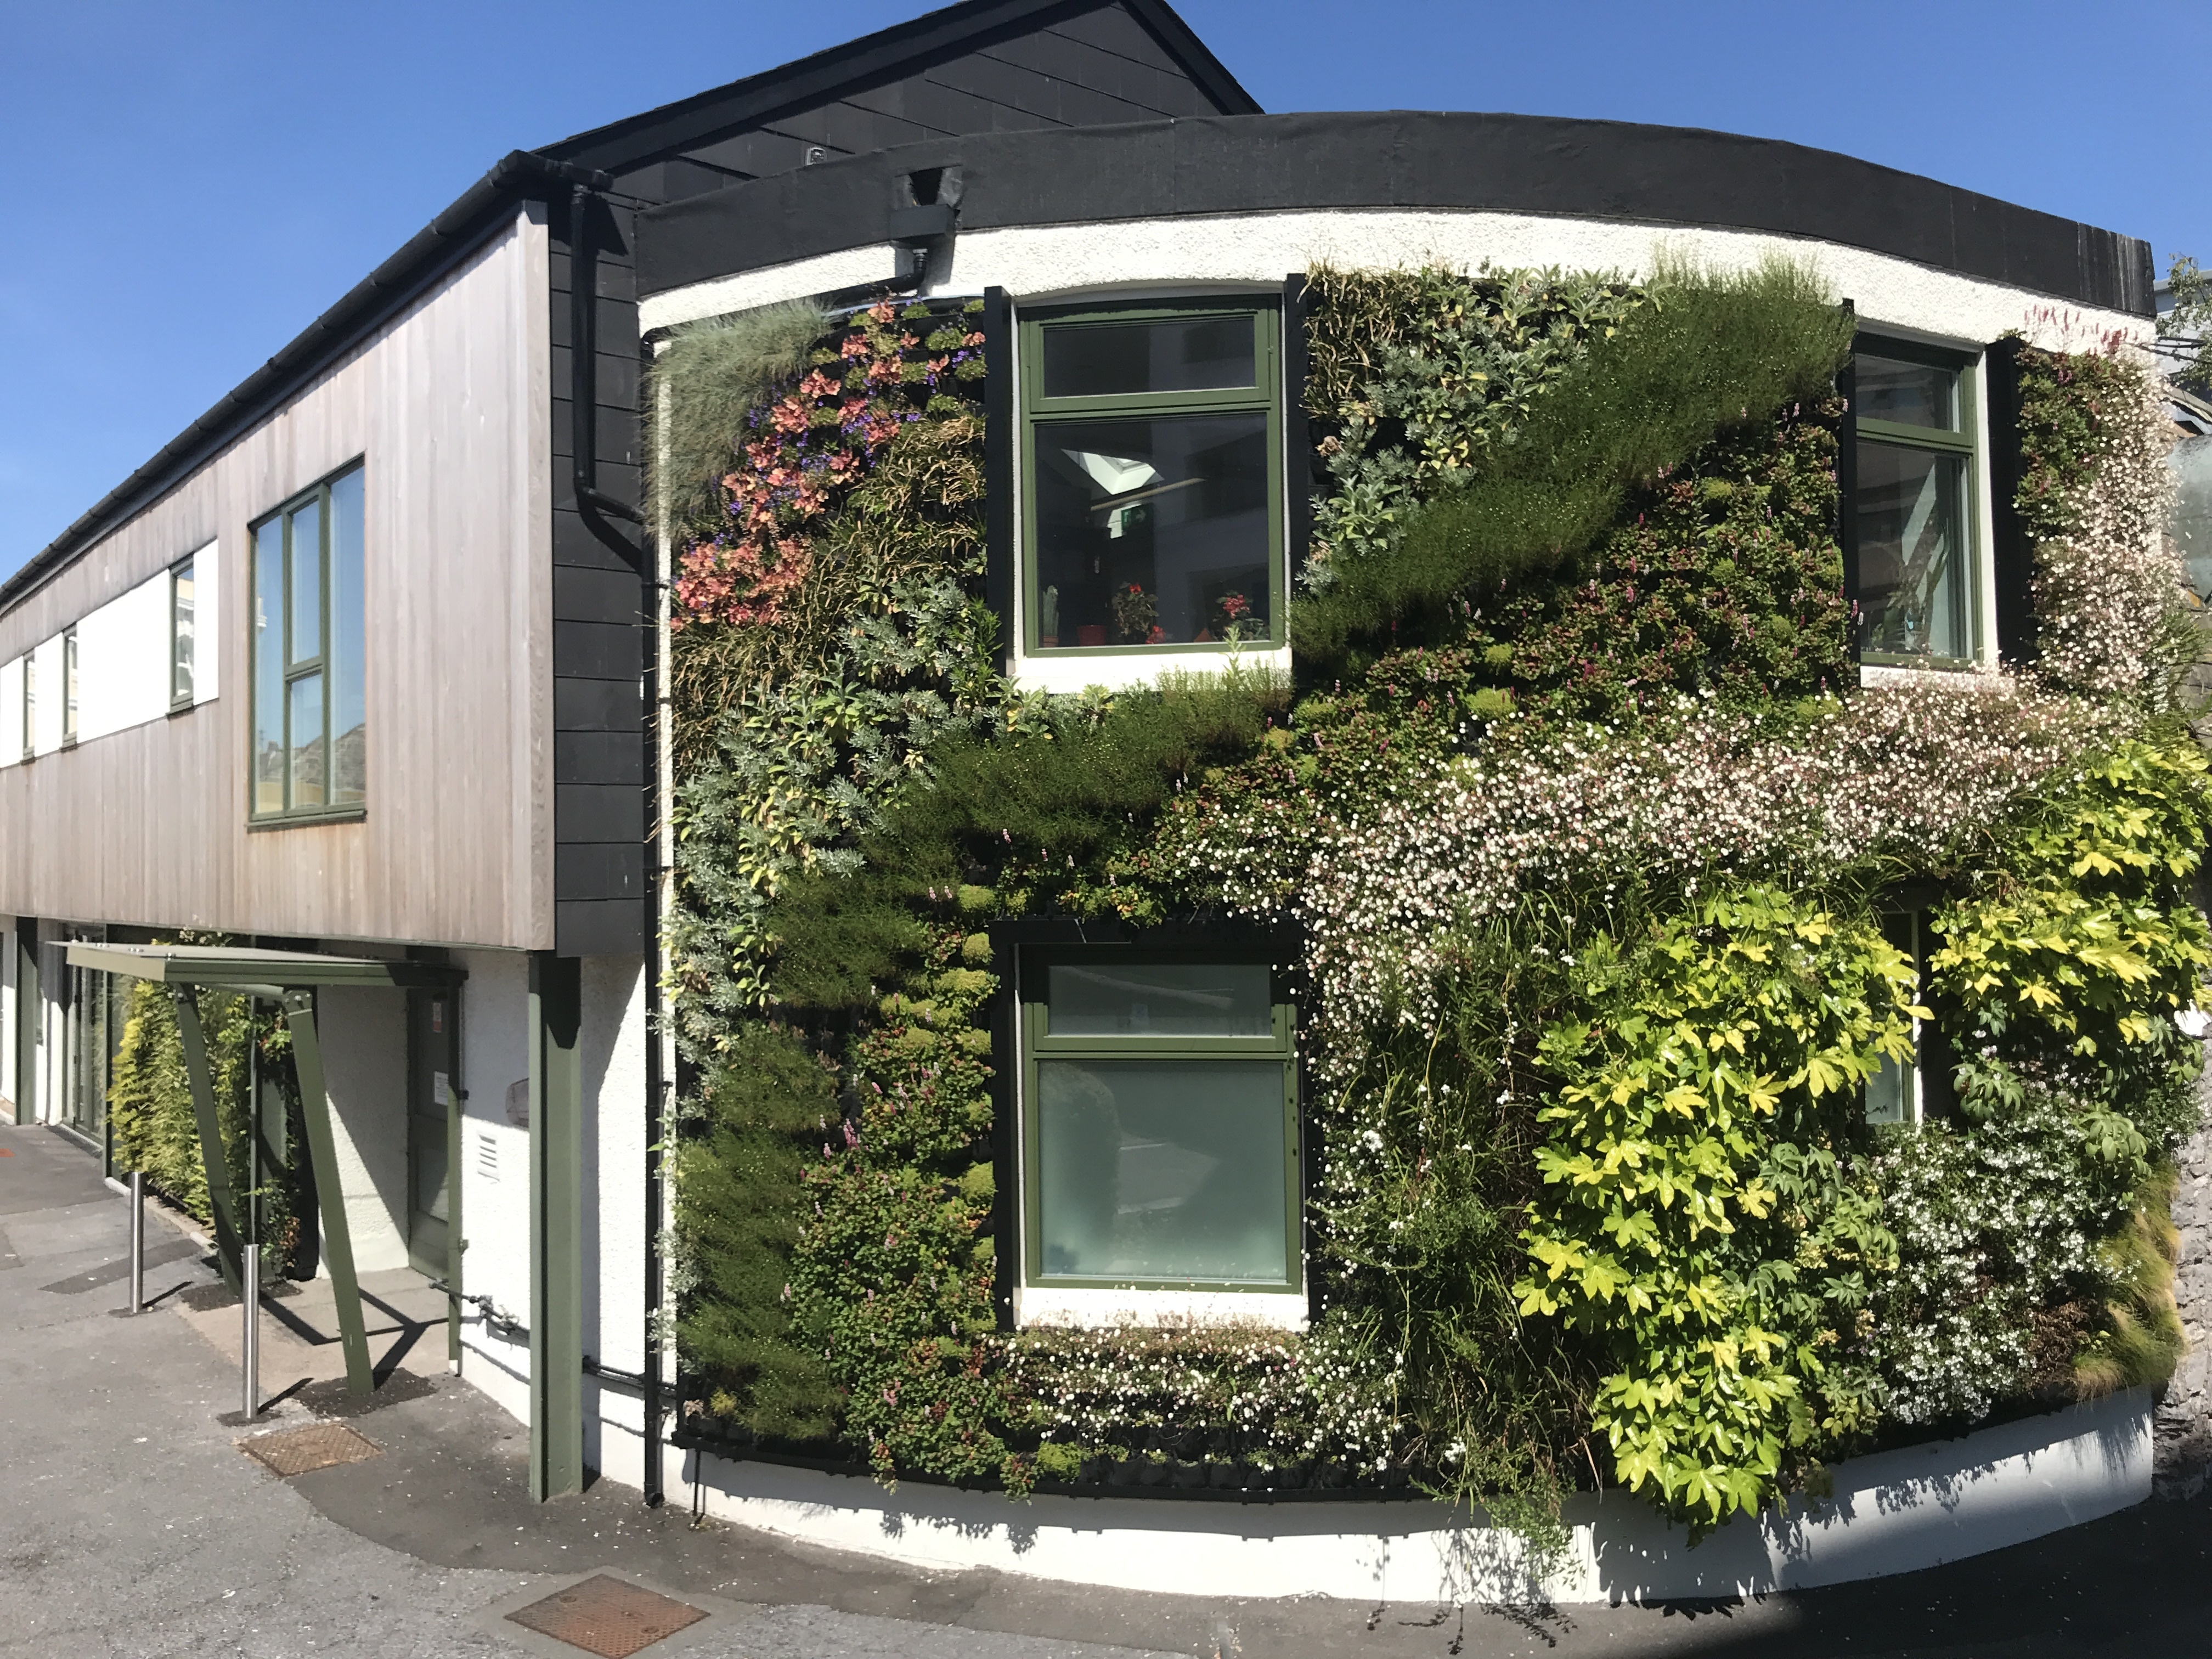 Sustainability Hub Image Credit Sustainable Earth Institute University of Plymouth